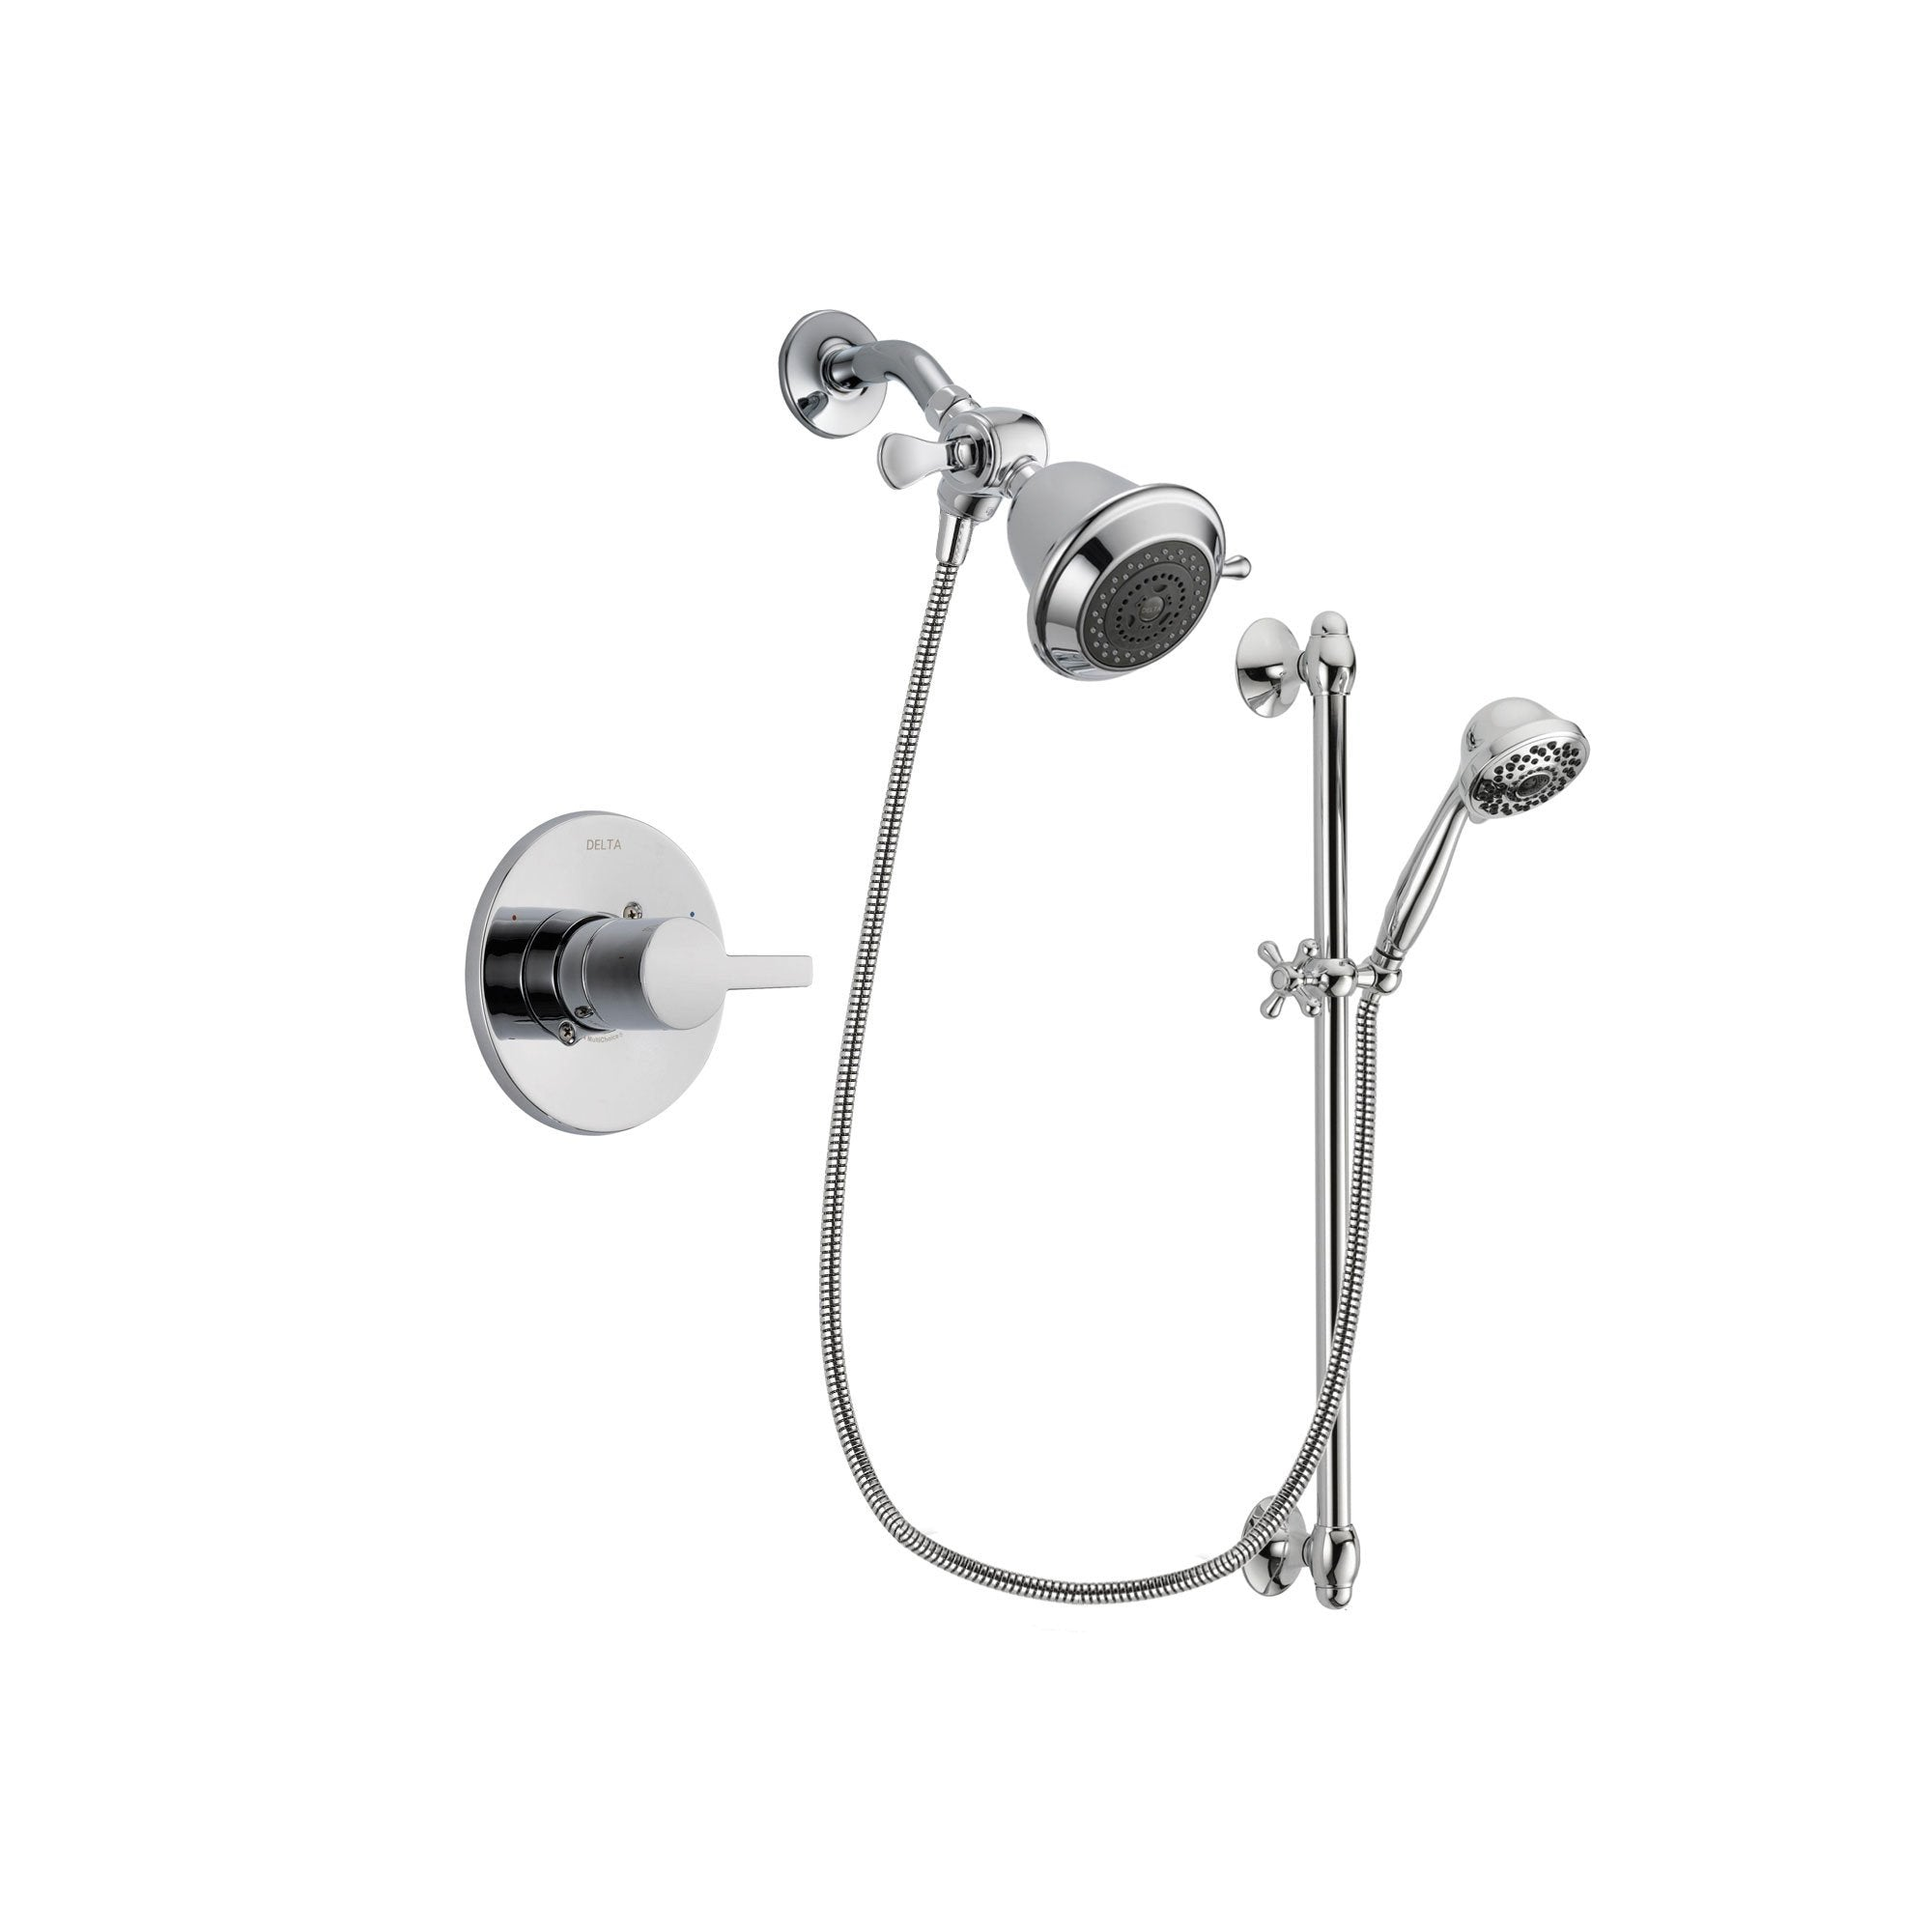 Delta Compel Chrome Shower Faucet System w/ Shower Head and Hand Shower DSP0576V